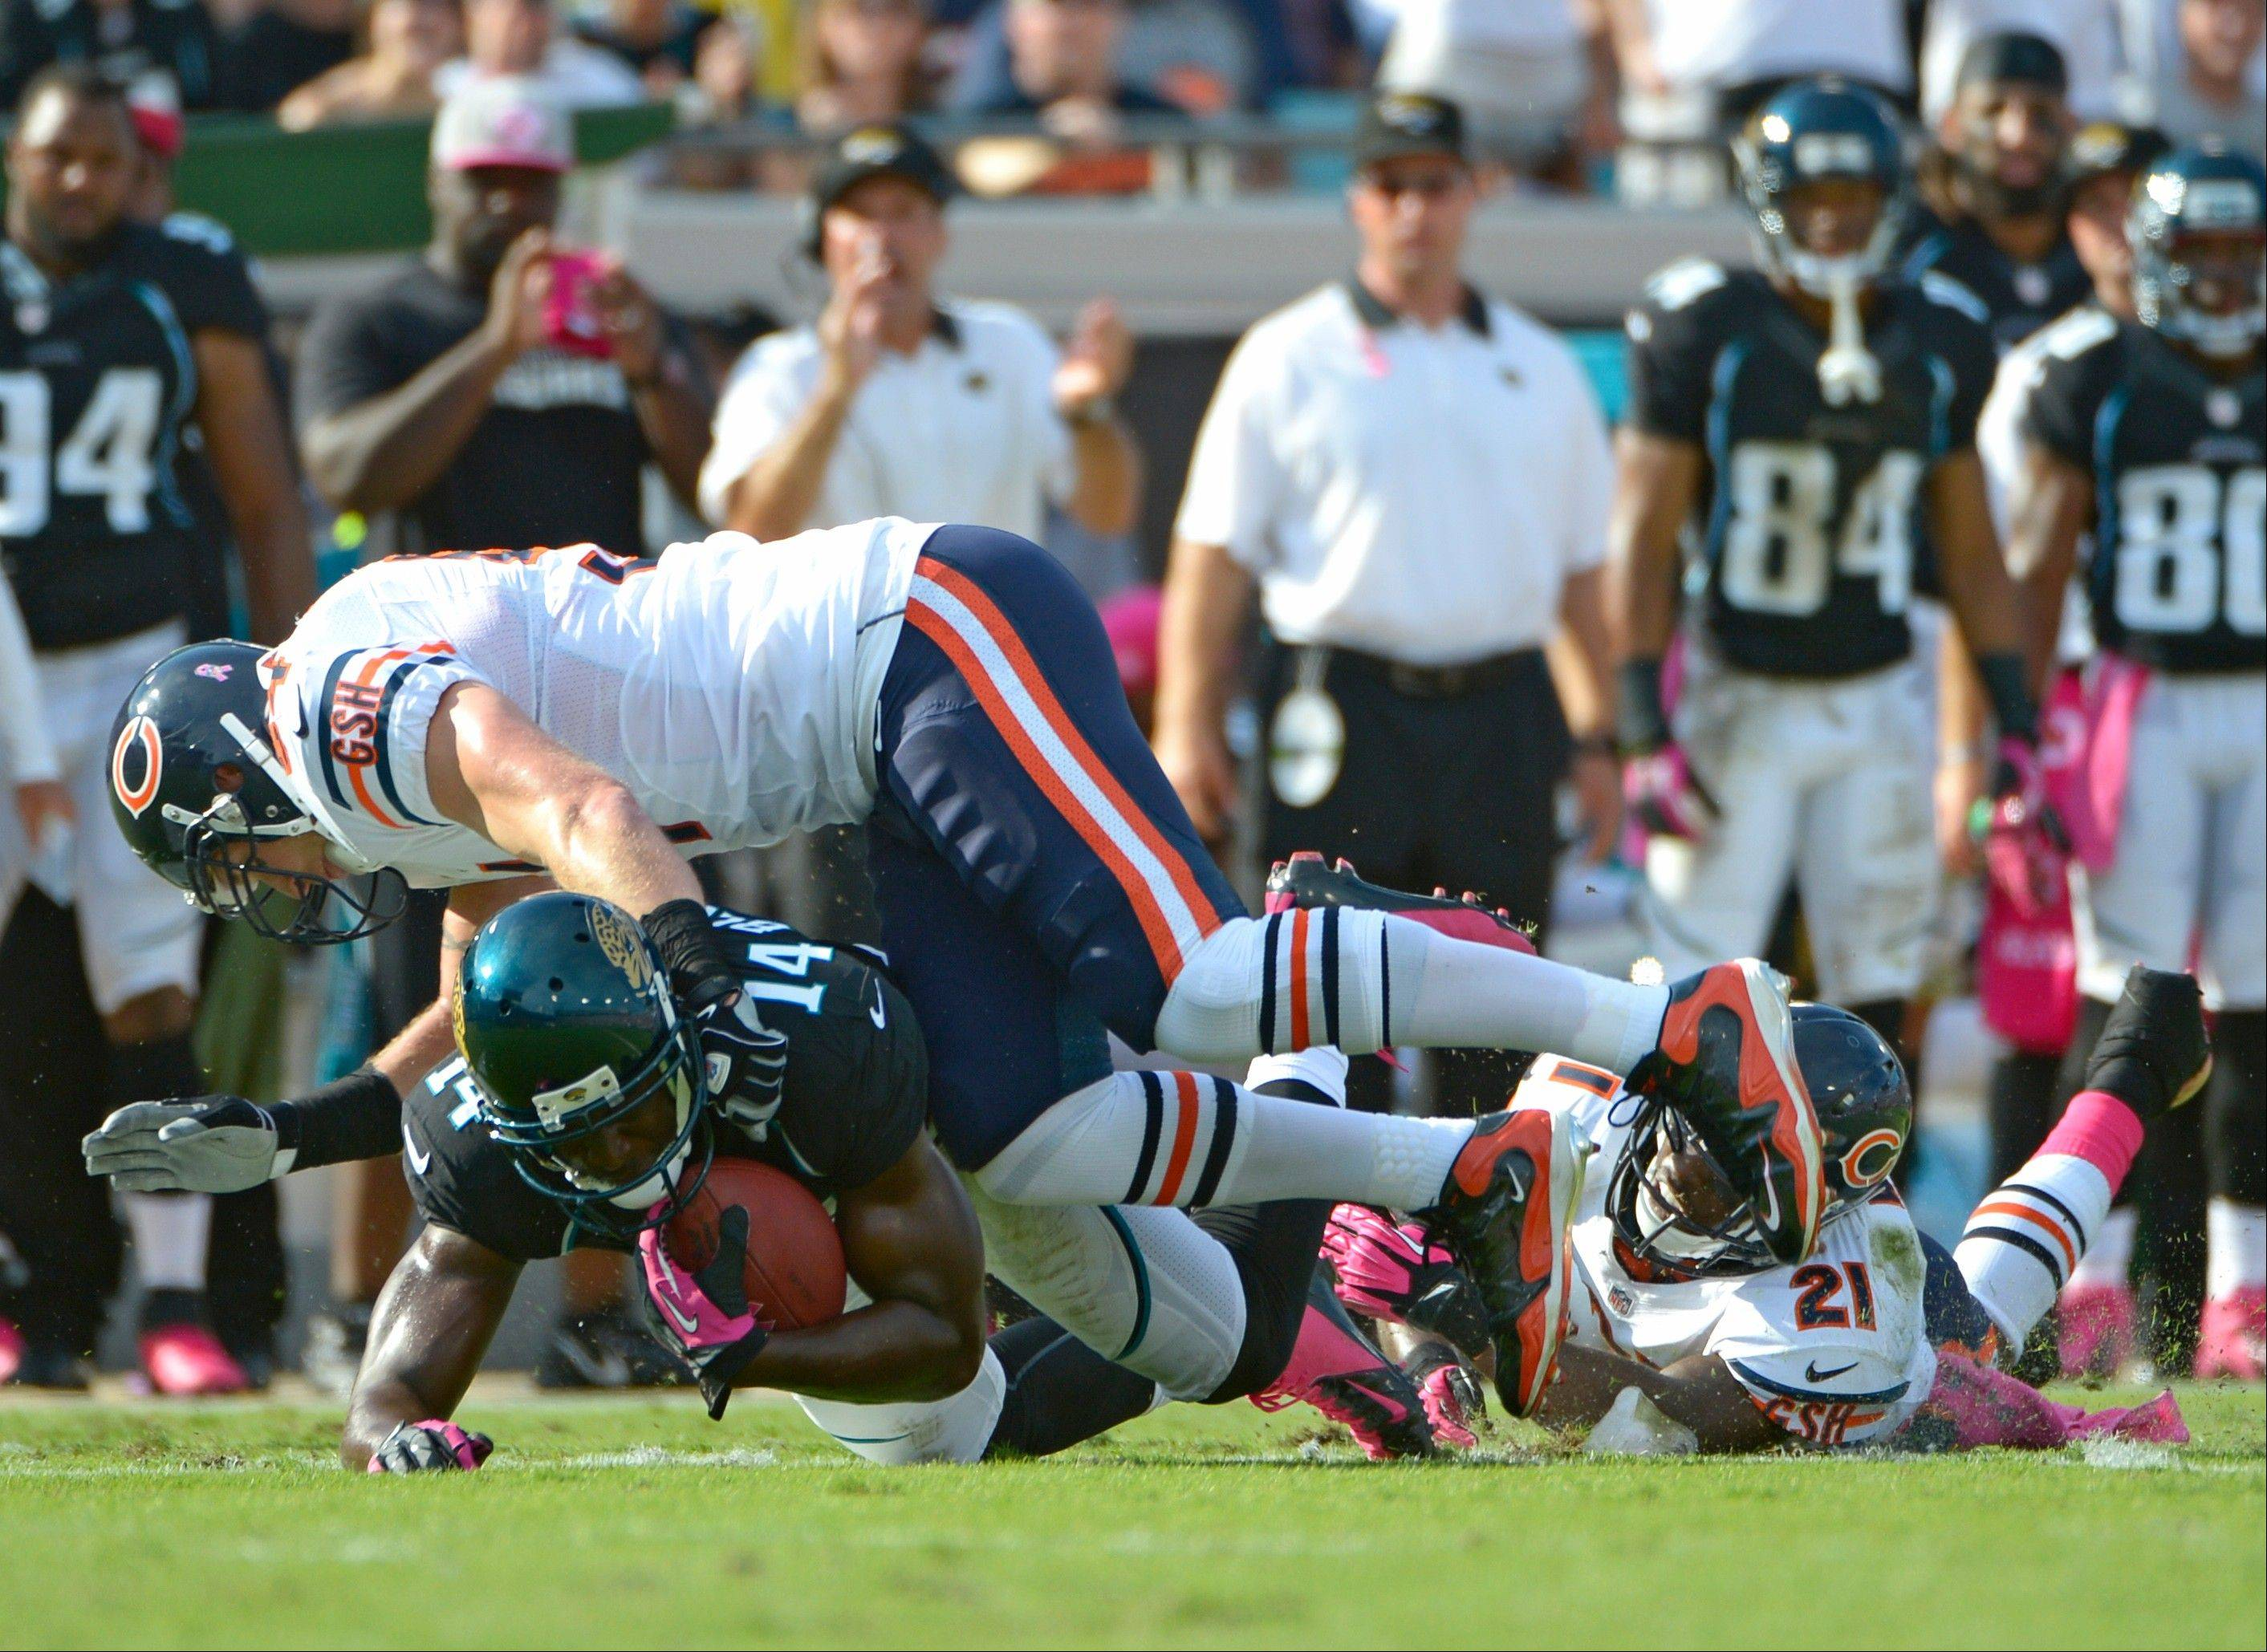 Jacksonville Jaguars wide receiver Justin Blackmon is tackled after a reception by Chicago Bears middle linebacker Brian Urlacher, top, and strong safety Major Wright during the first half, Sunday, in Jacksonville, Fla.